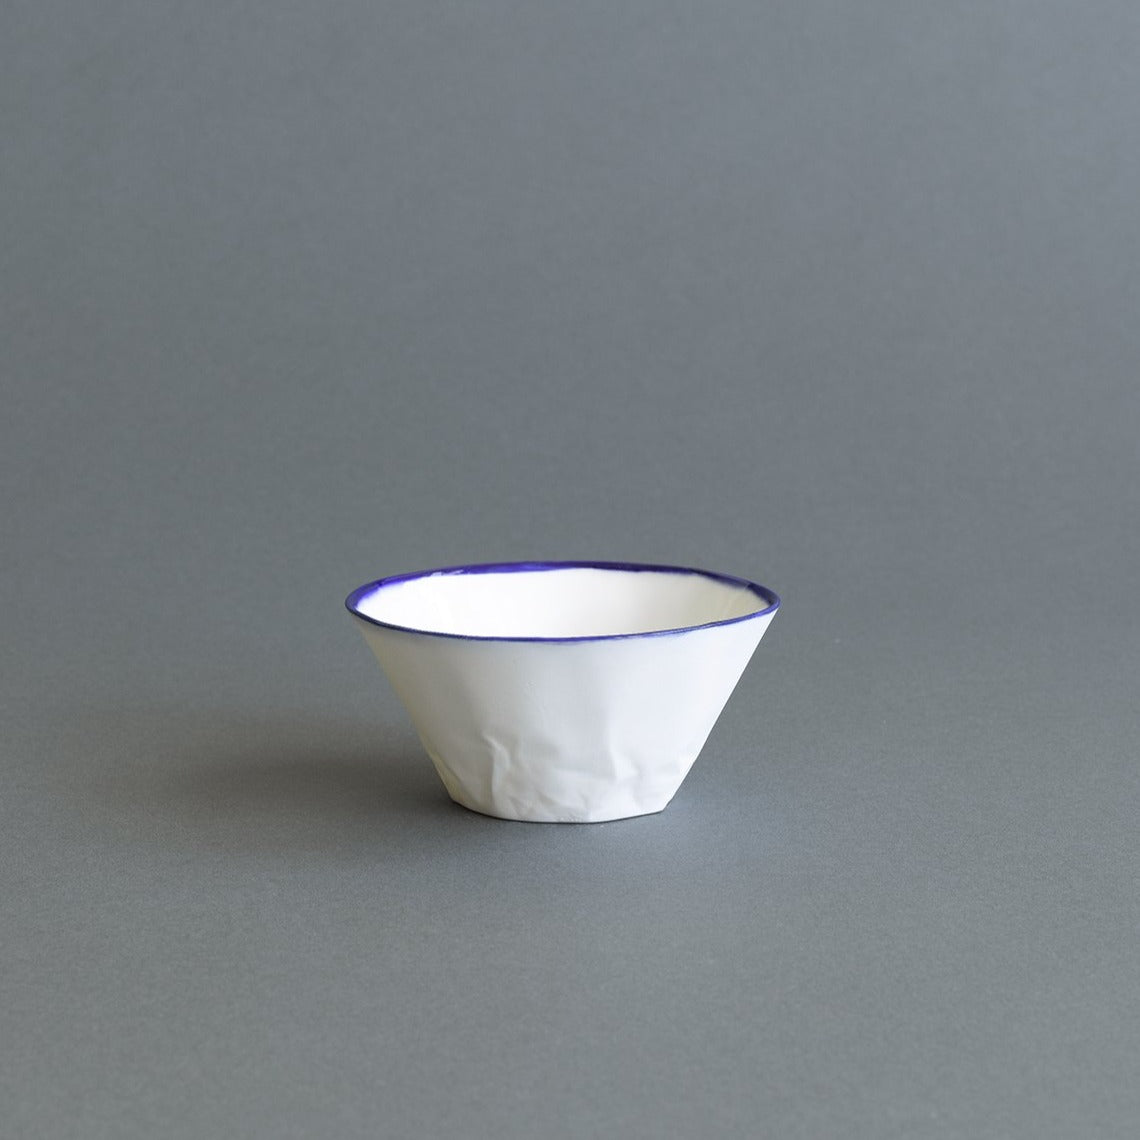 Deep Blue Ceramic Dessert/Breakfast Bowl - Paper